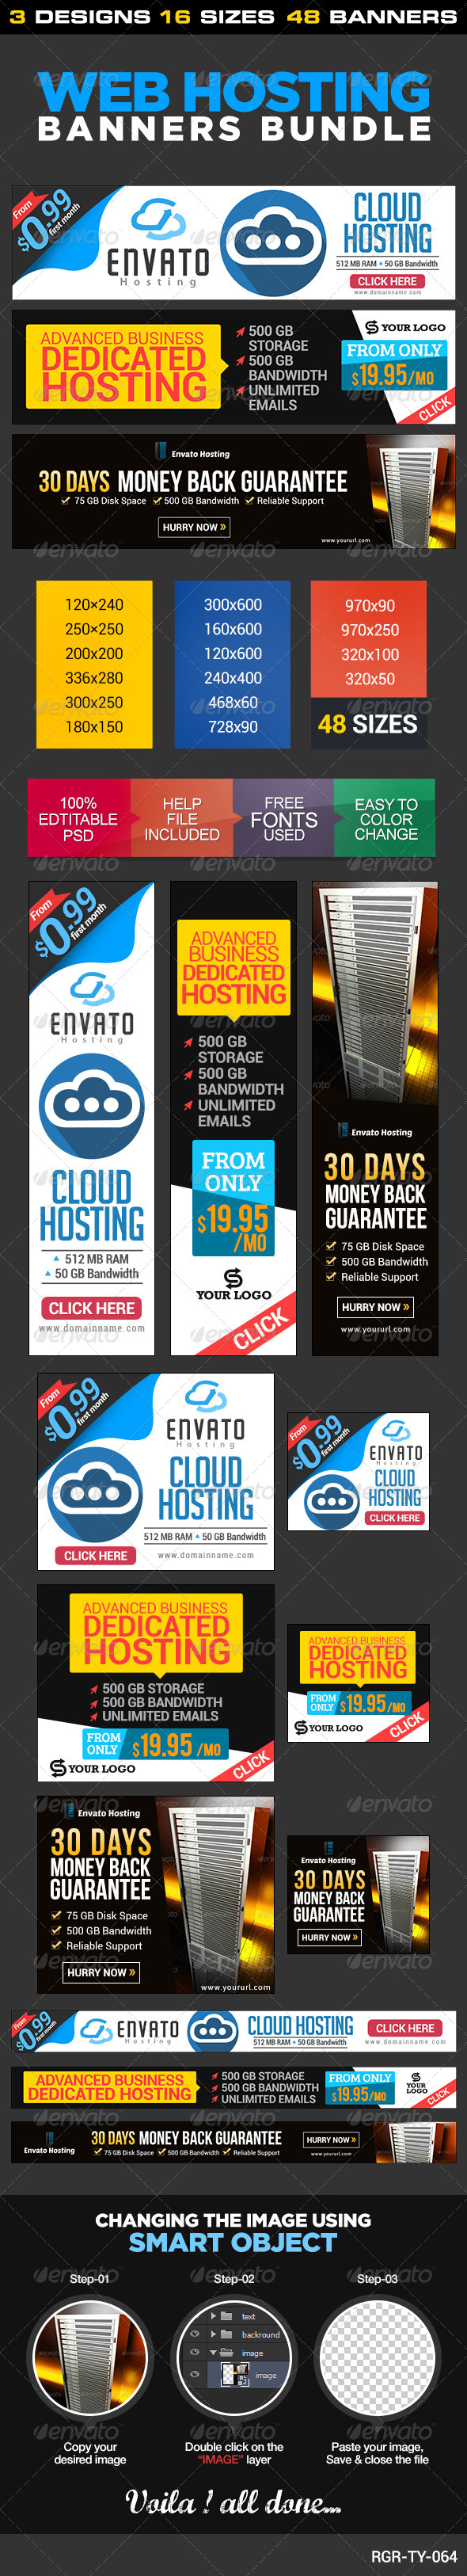 Web Hosting Banner Bundle - 3 sets